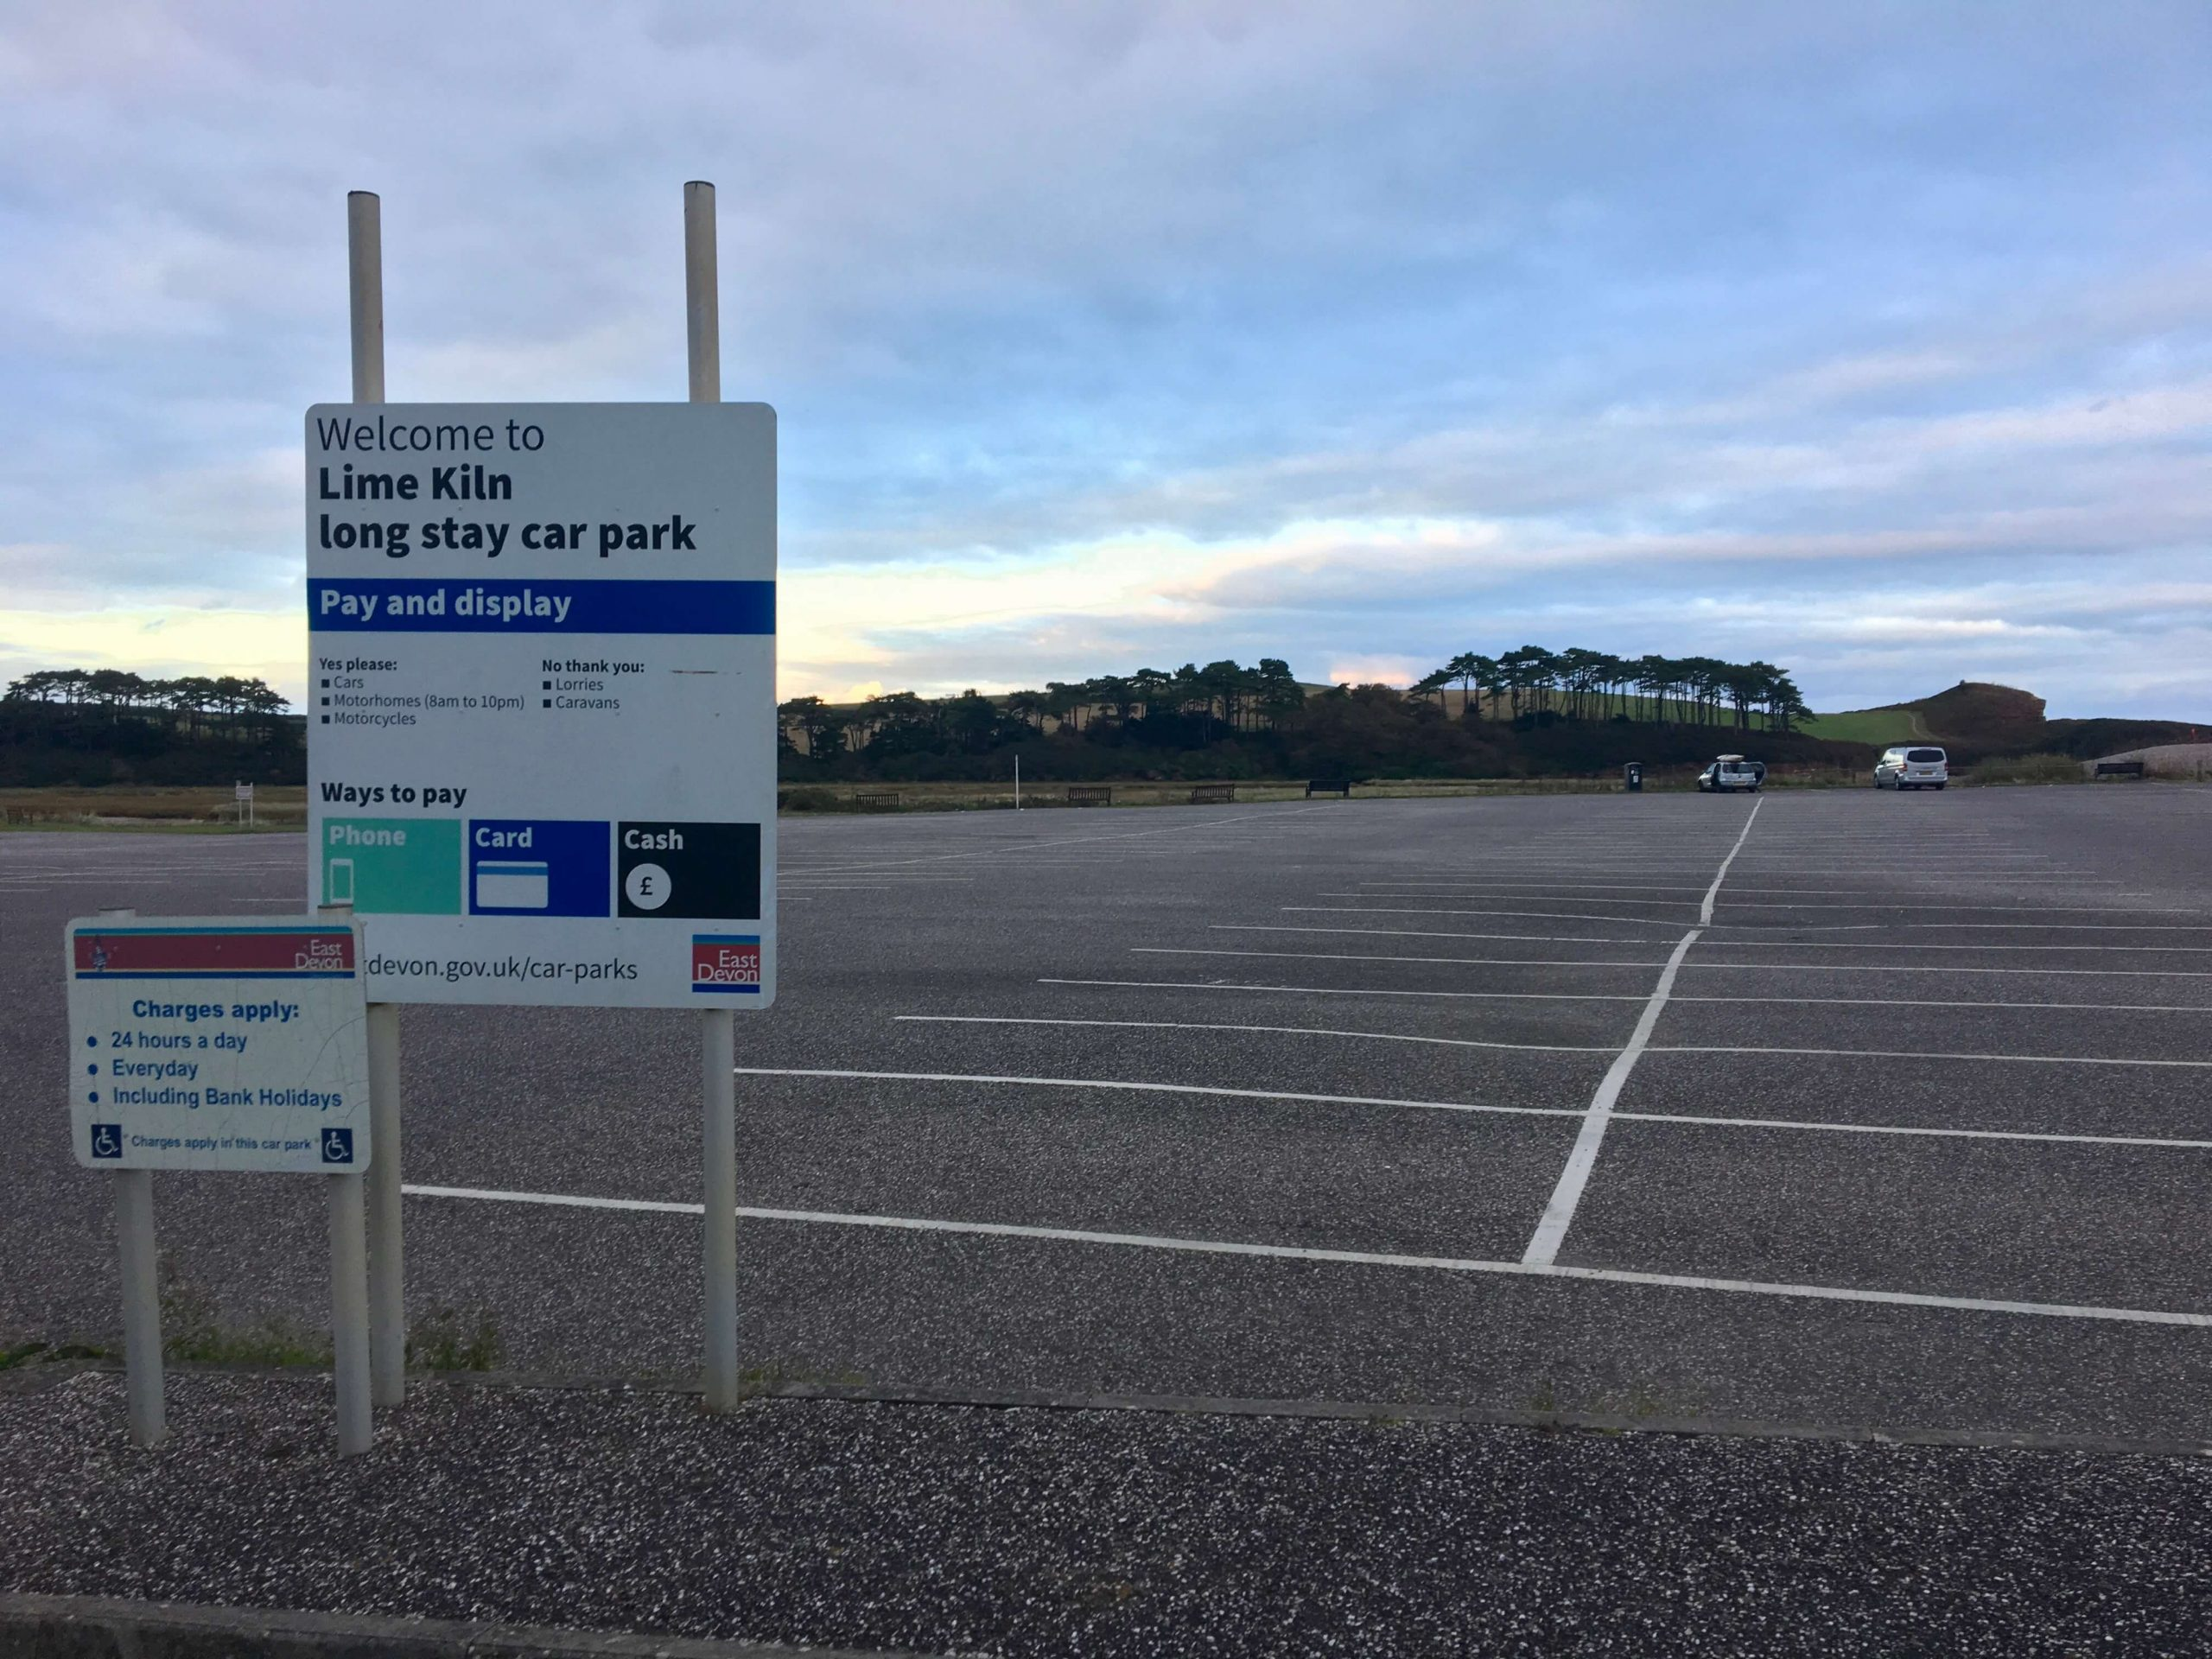 The Lime Kiln car park in Budleigh Salterton.